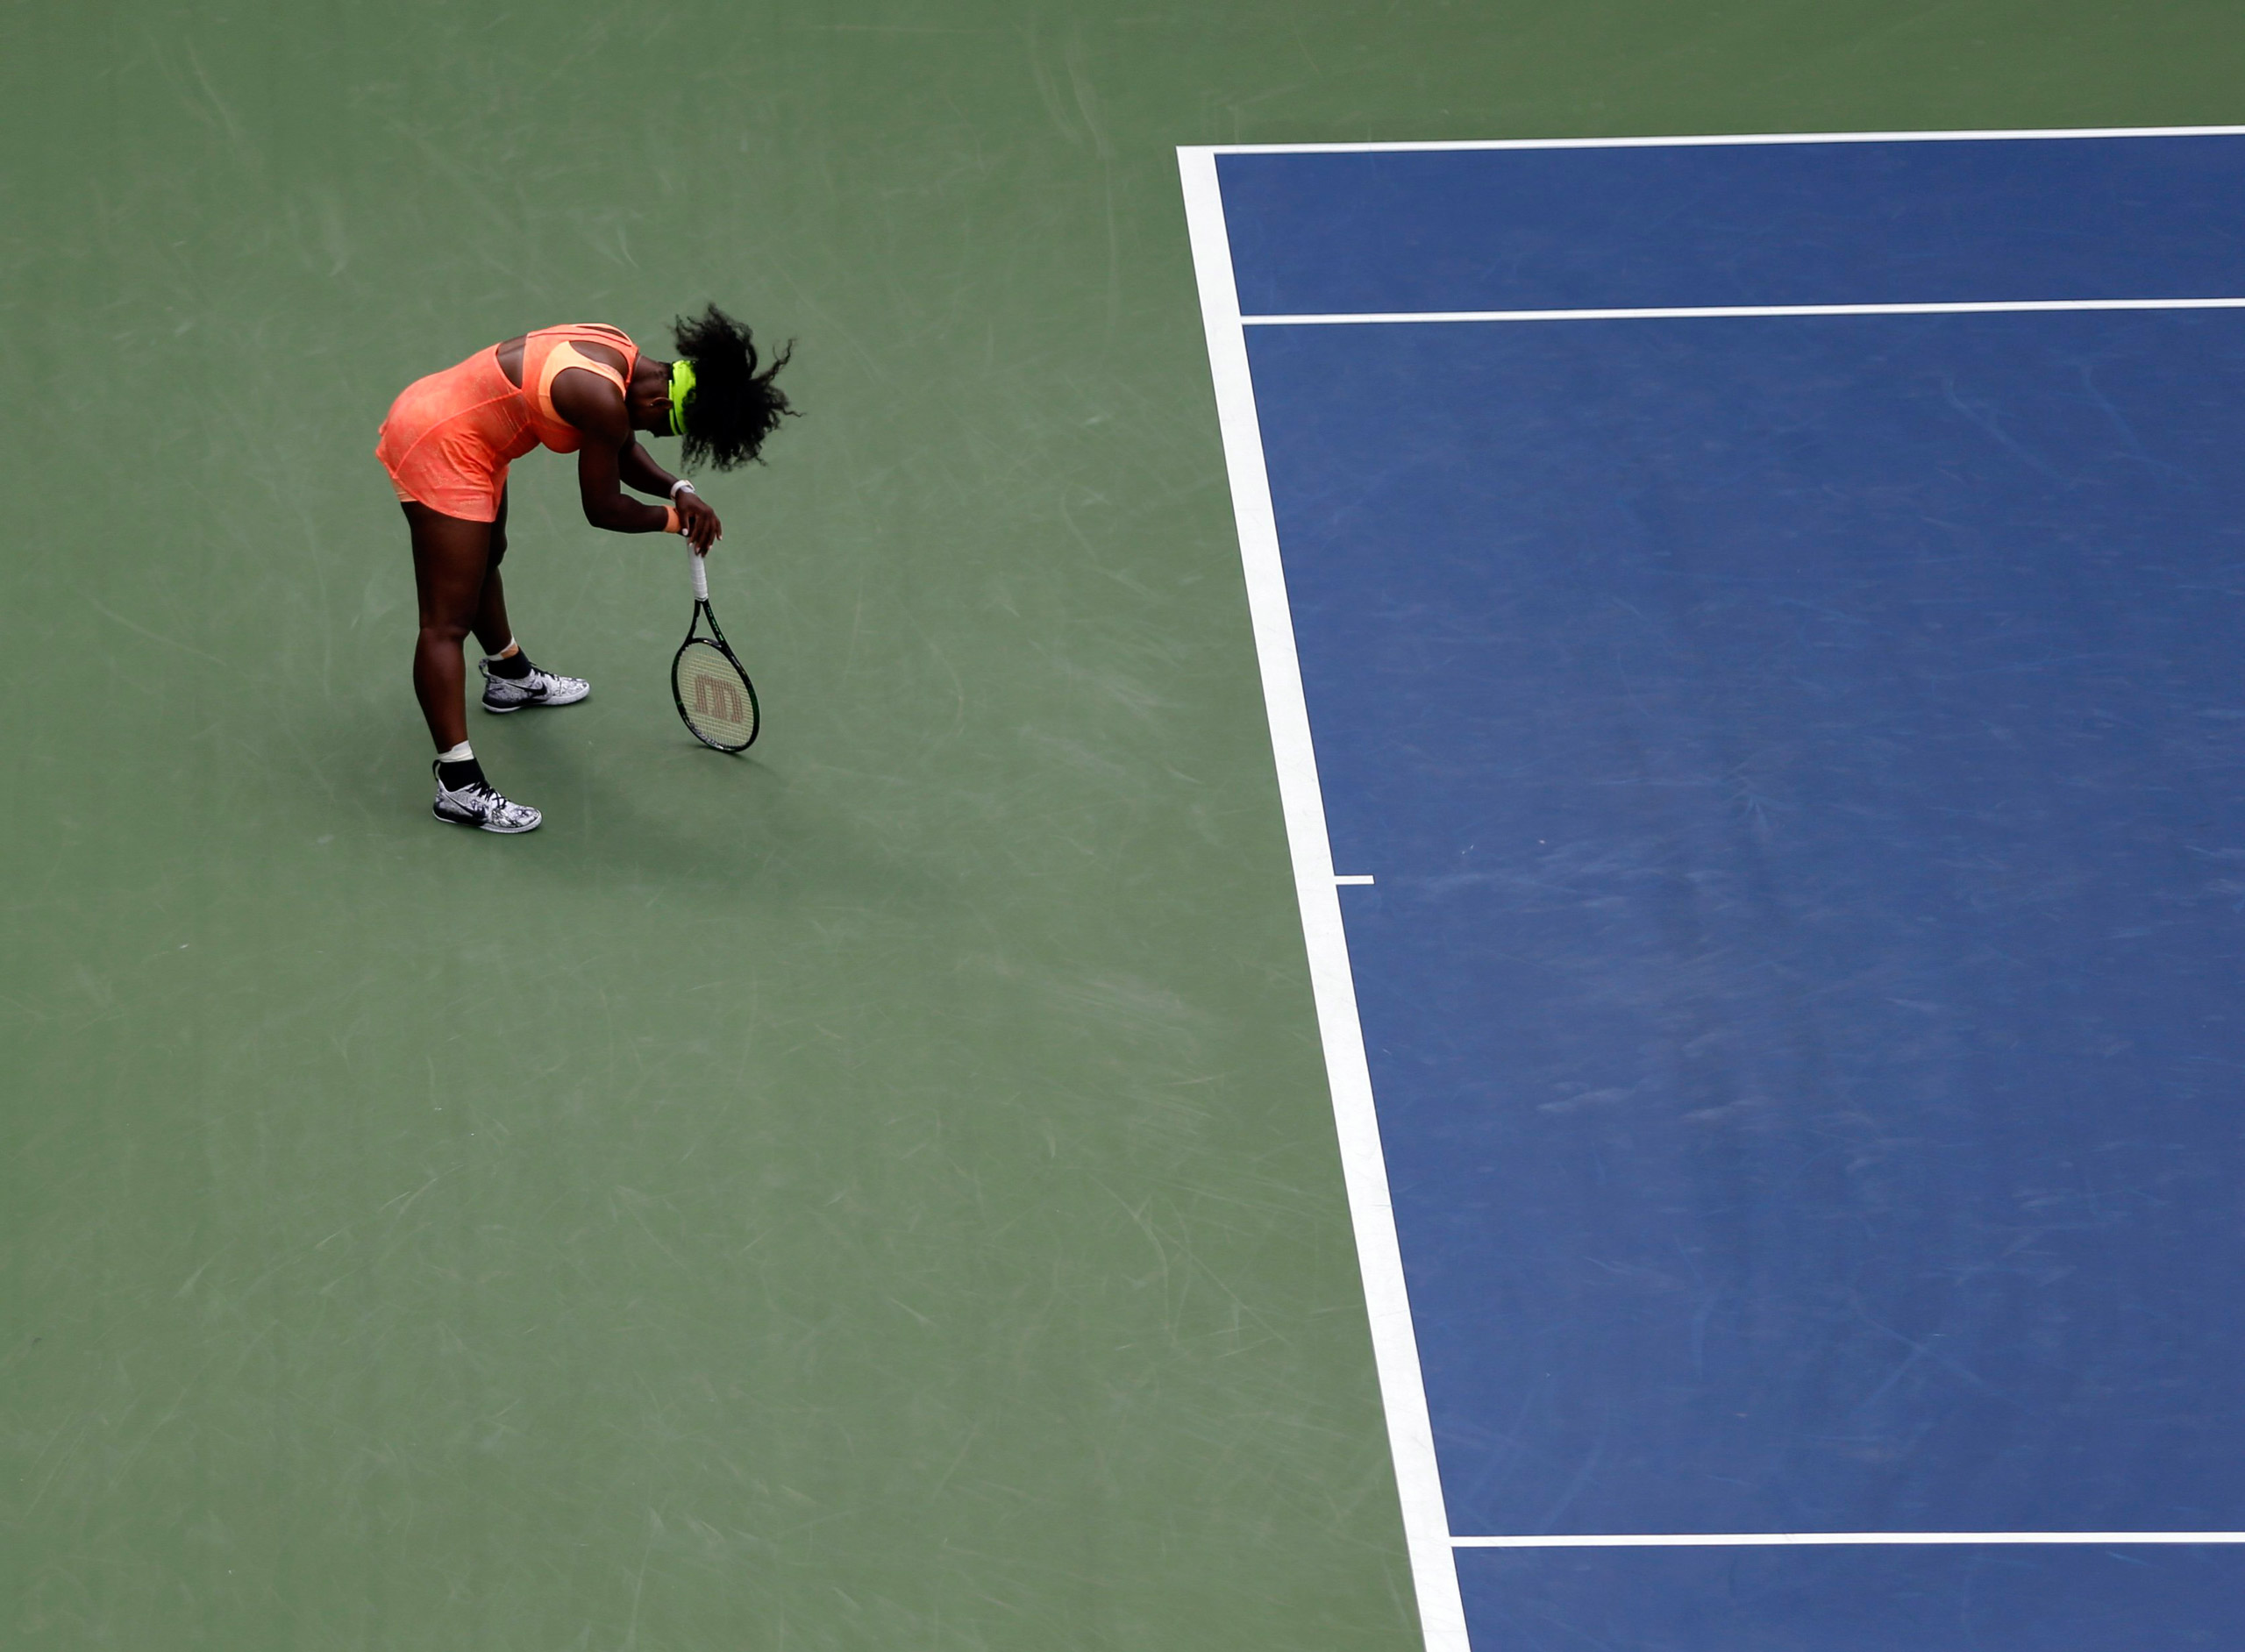 Serena Williams reacts after losing a point to Roberta Vinci, of Italy, during a semifinal match at the U.S. Open tennis tournament in New York, on Sept. 11, 2015.